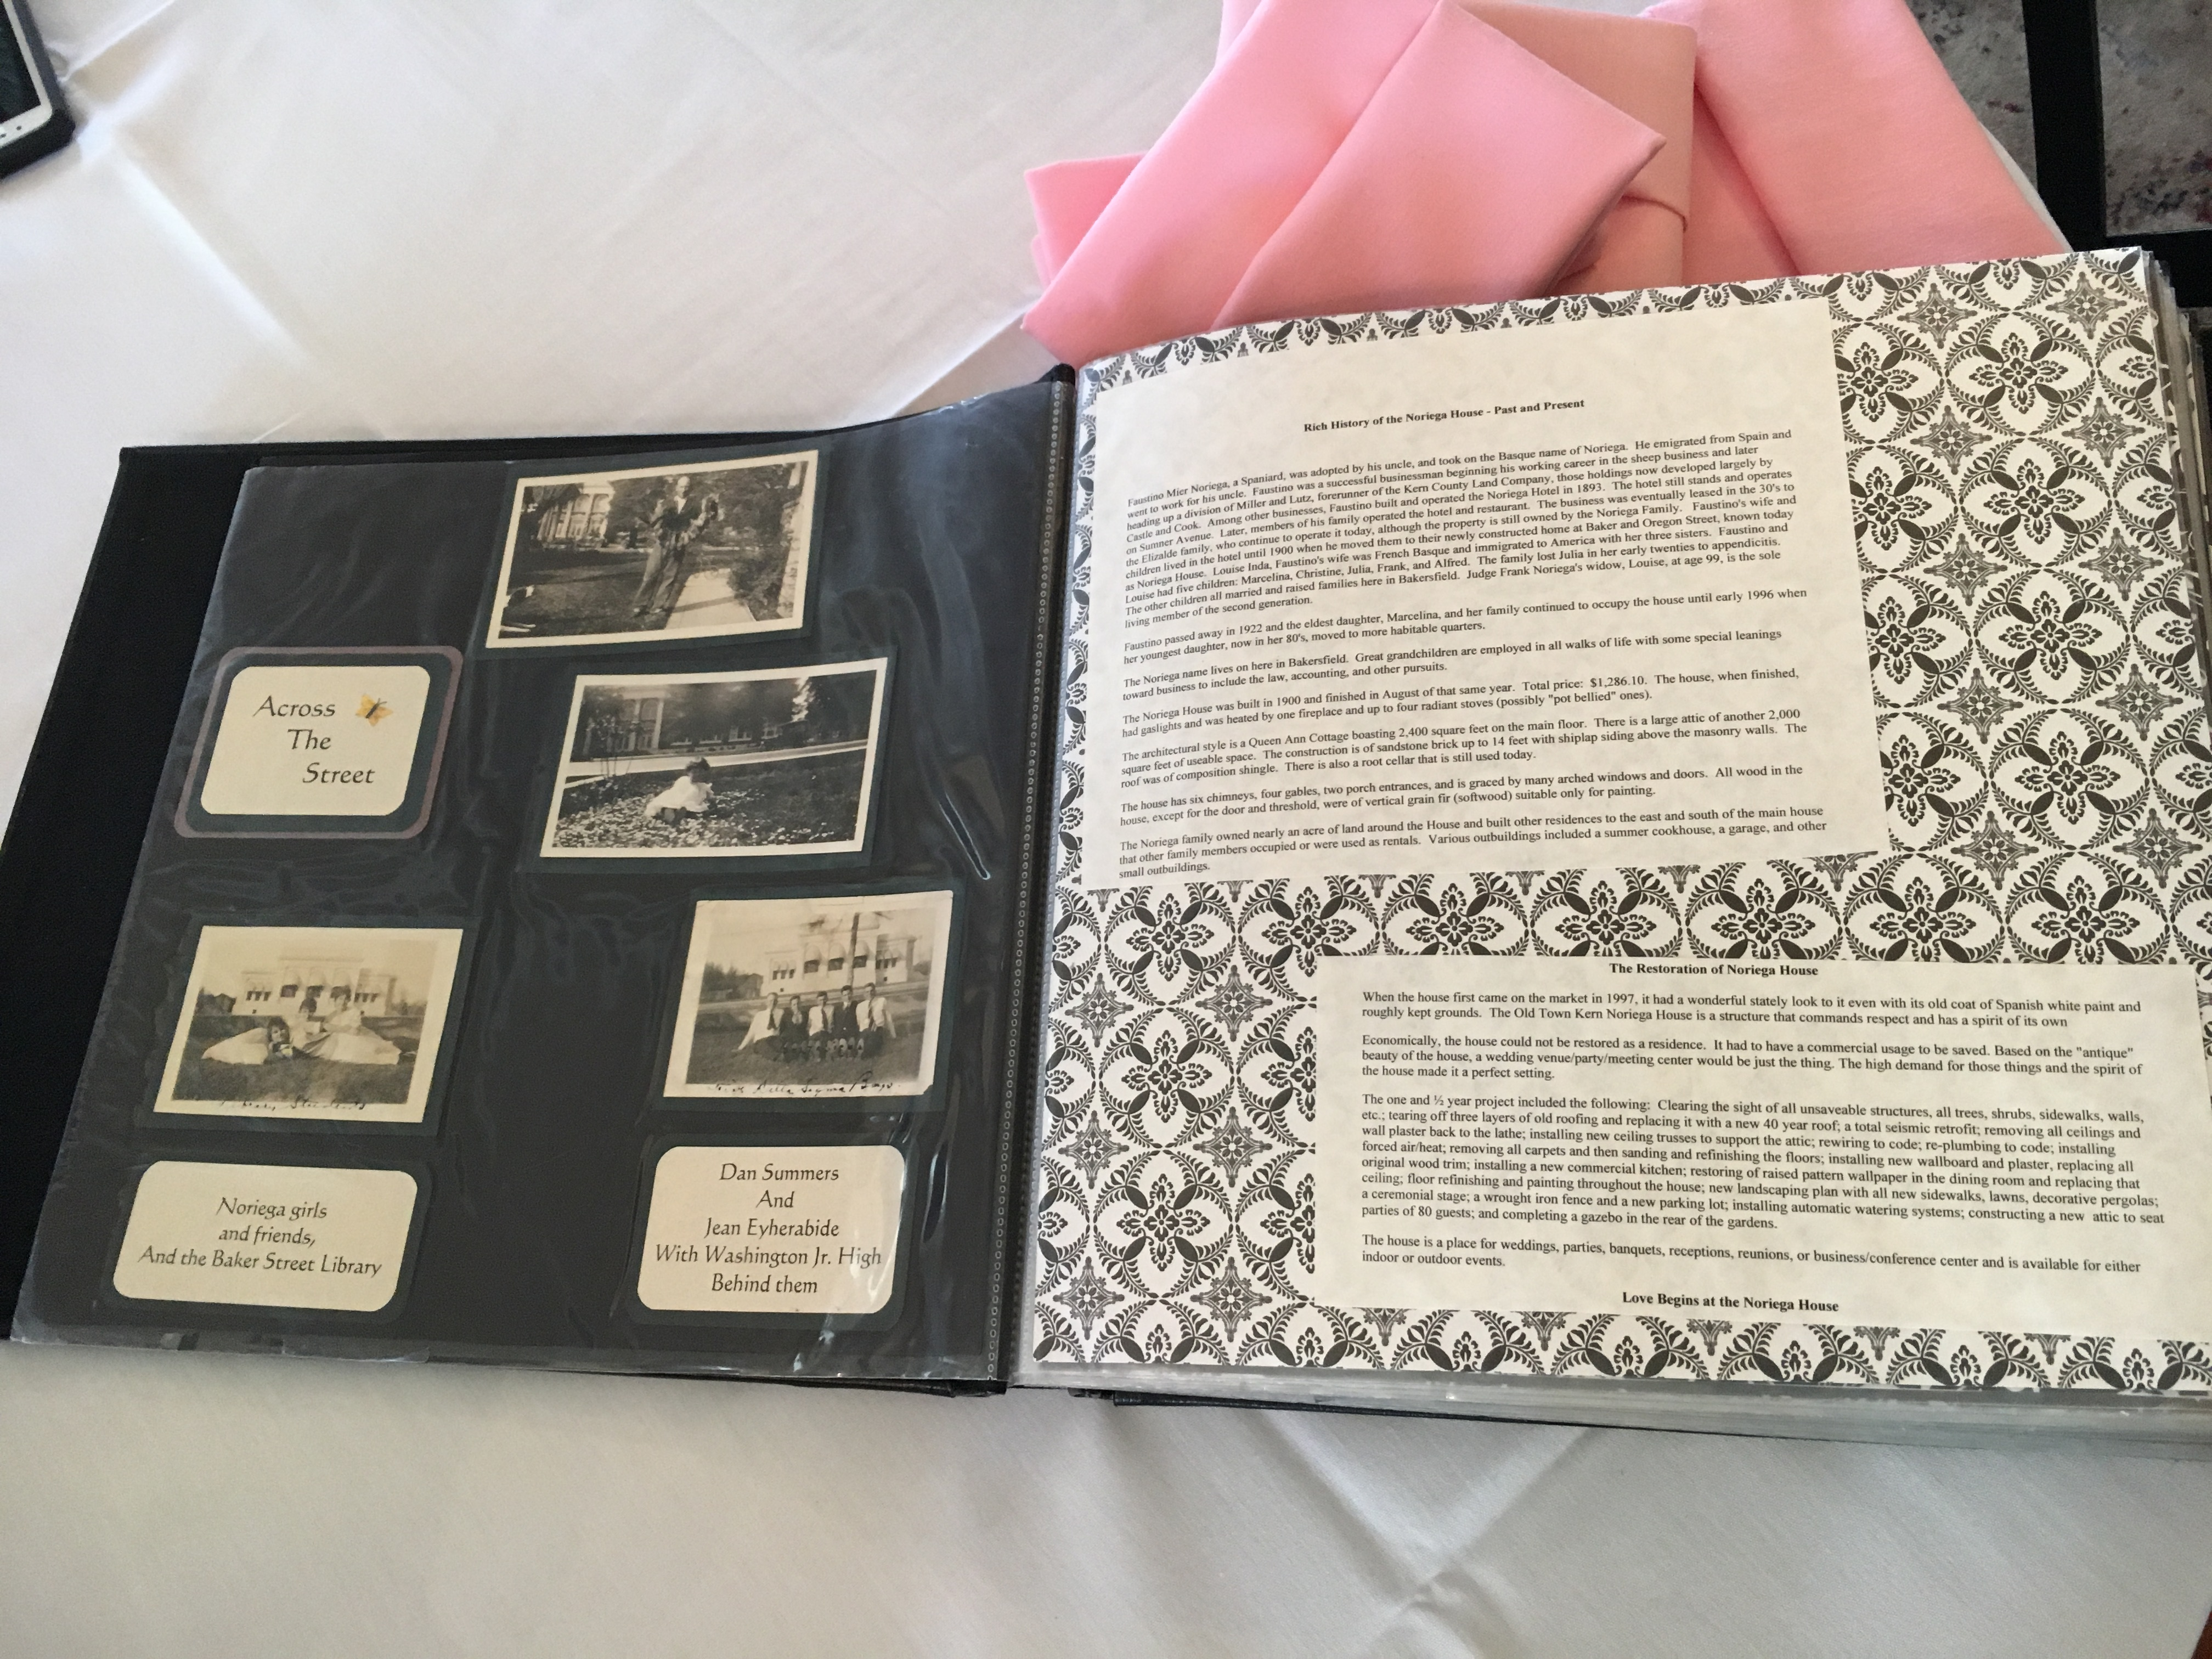 Scrapbook of historical information about the house